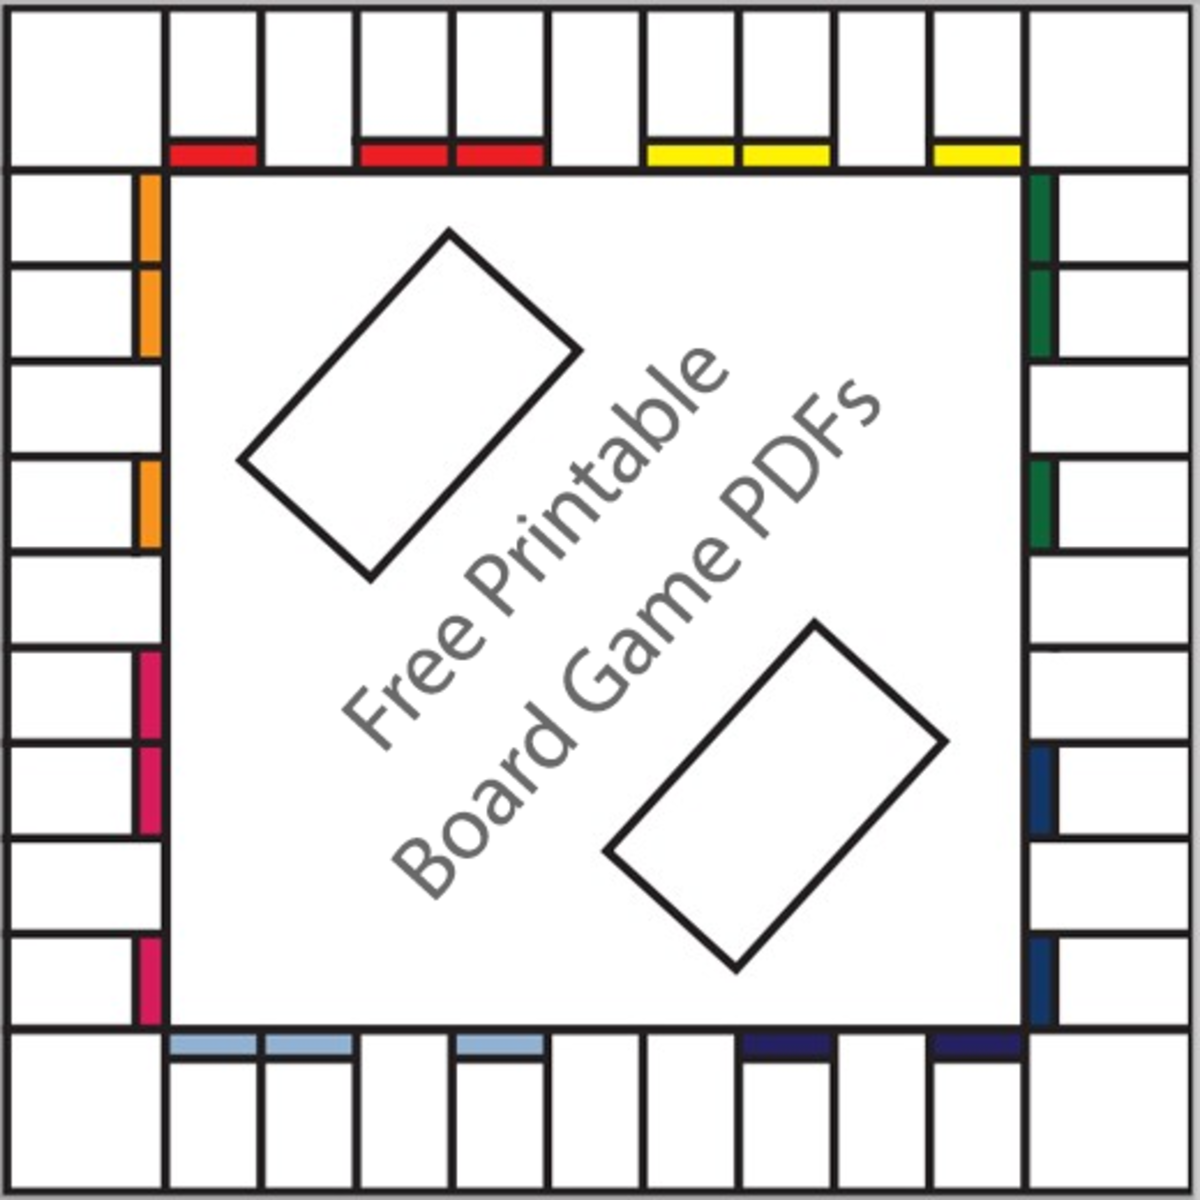 16 Free Printable Board Game Templates DZkTIfo6